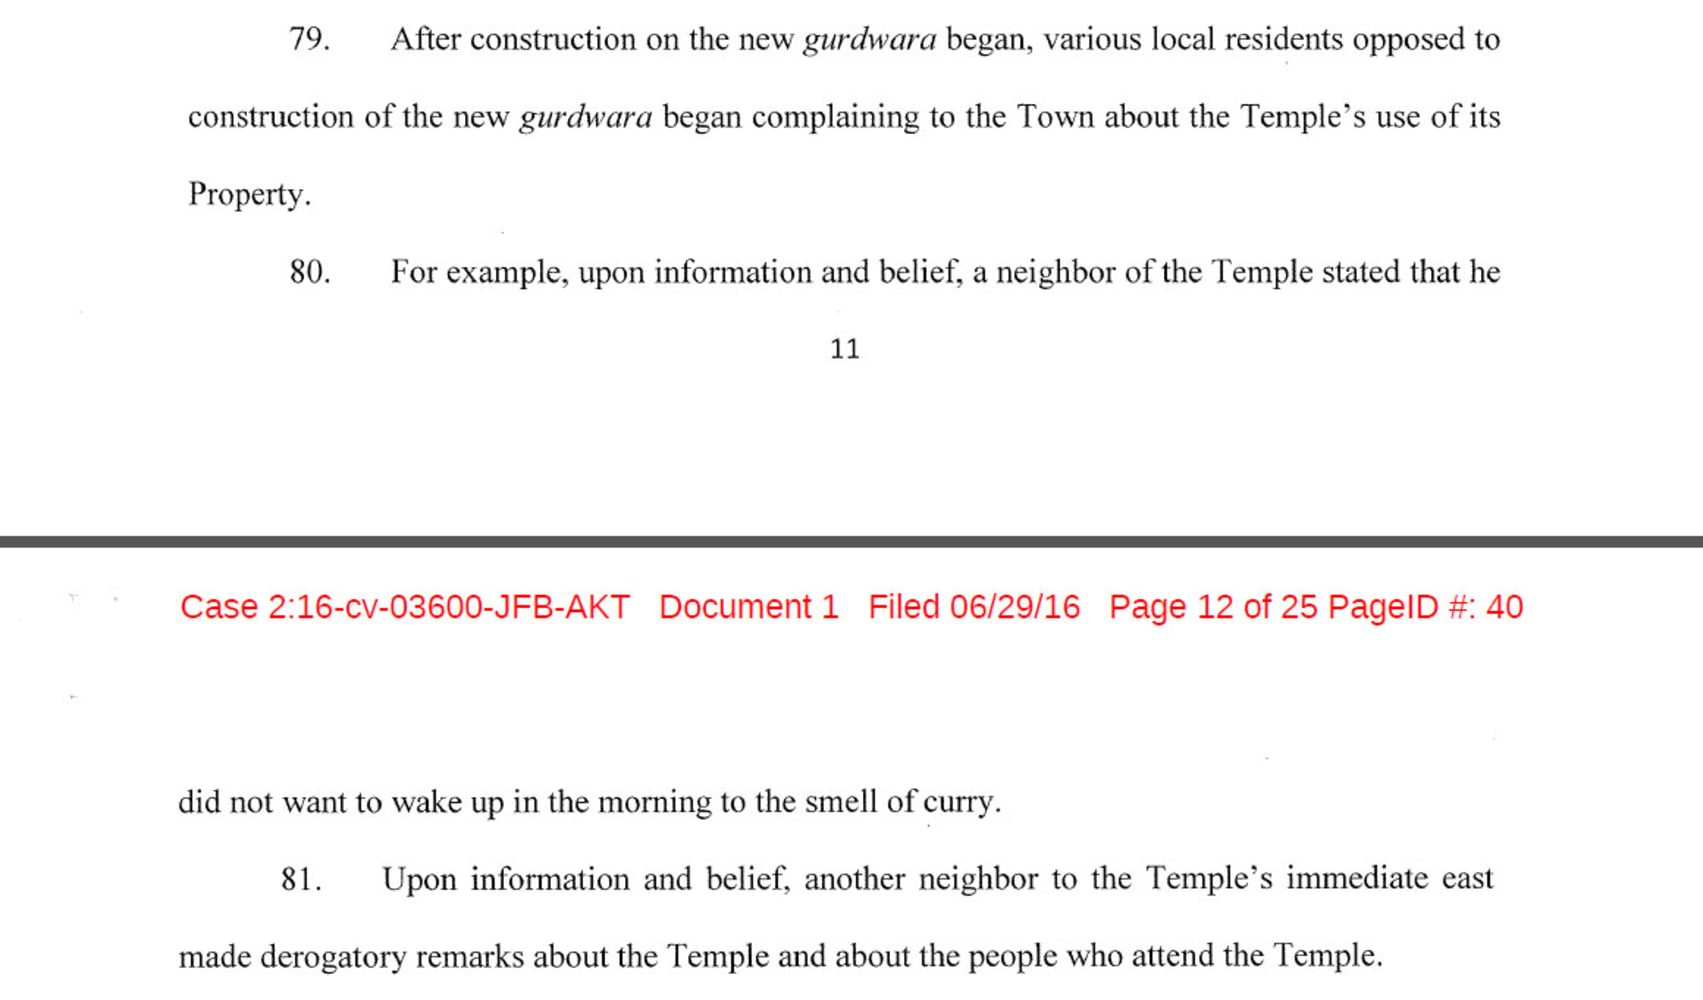 sikh congregation sues town after temple construction halted nbc an excerpt of the suit alleging that one of the neighbors of the gurdwara had said he did not want to take up in the morning to the smell of curry